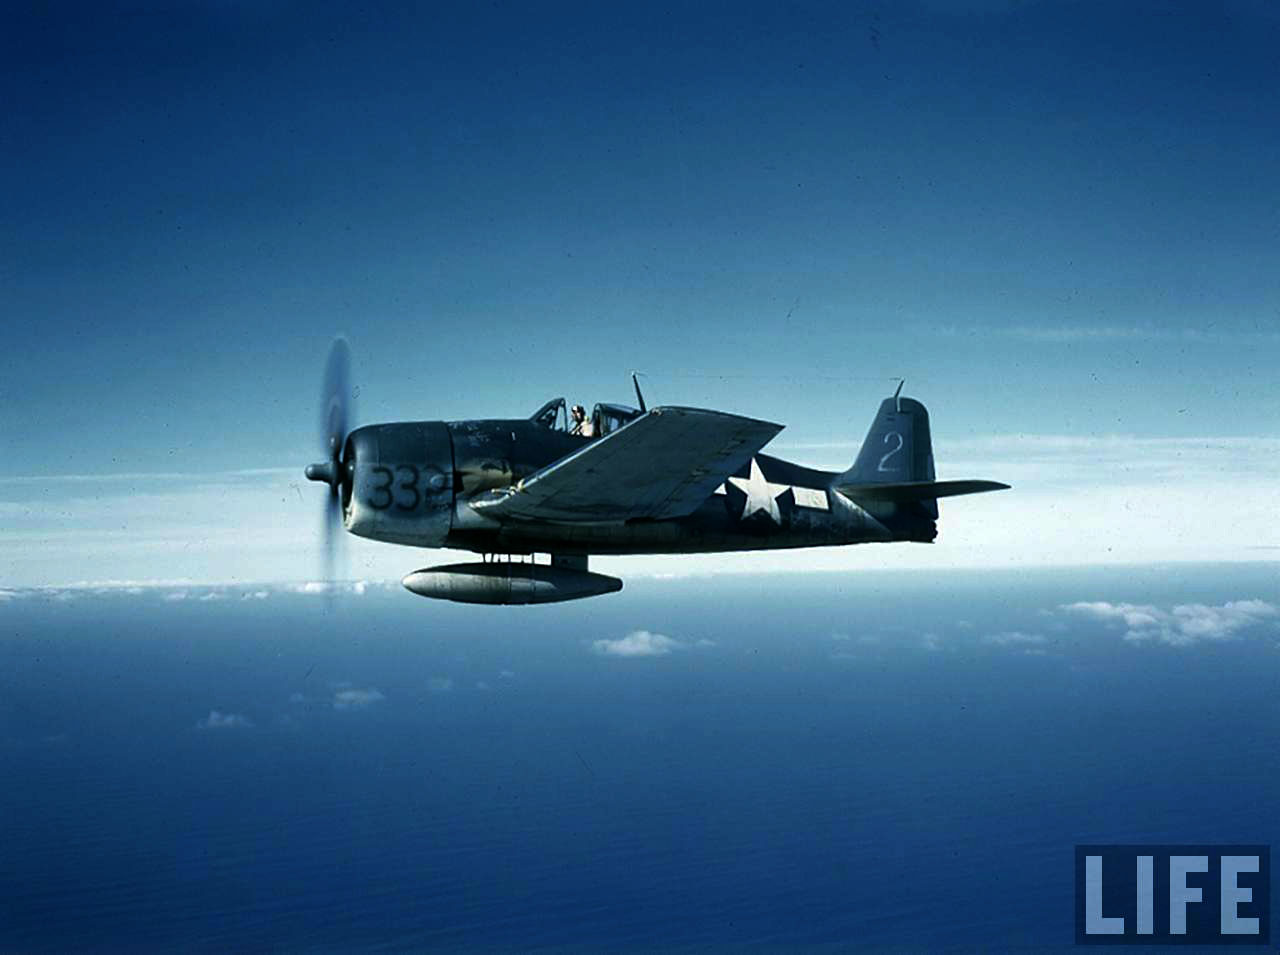 Grumman F6F 3 Hellcat Time Life color photo showing 332 pre unit delivery markings 01